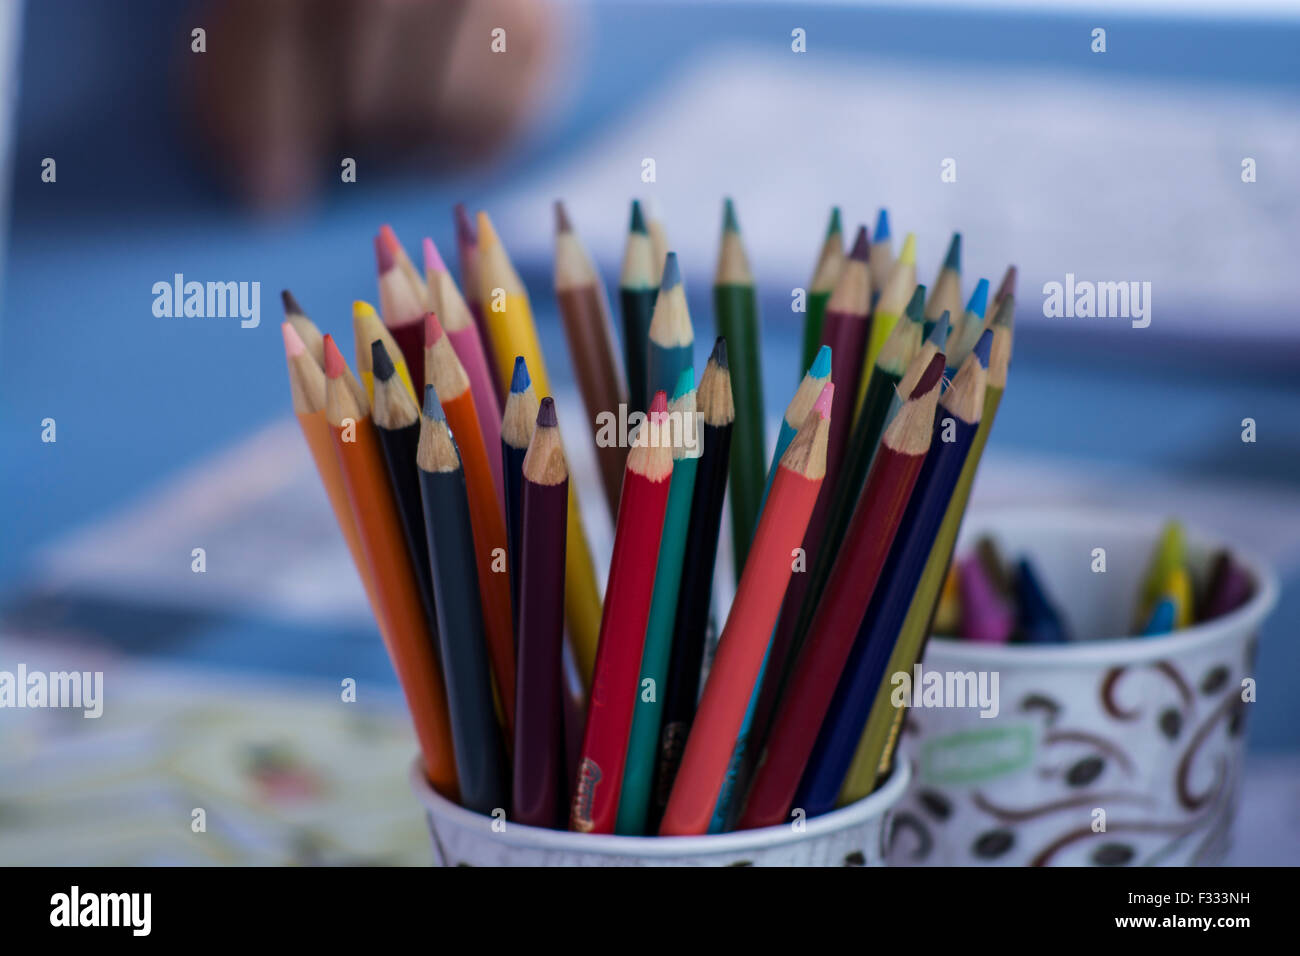 A cup of colored pencils; arts and crafts are part of the festivities at the Irvine Global Village Festival - Stock Image